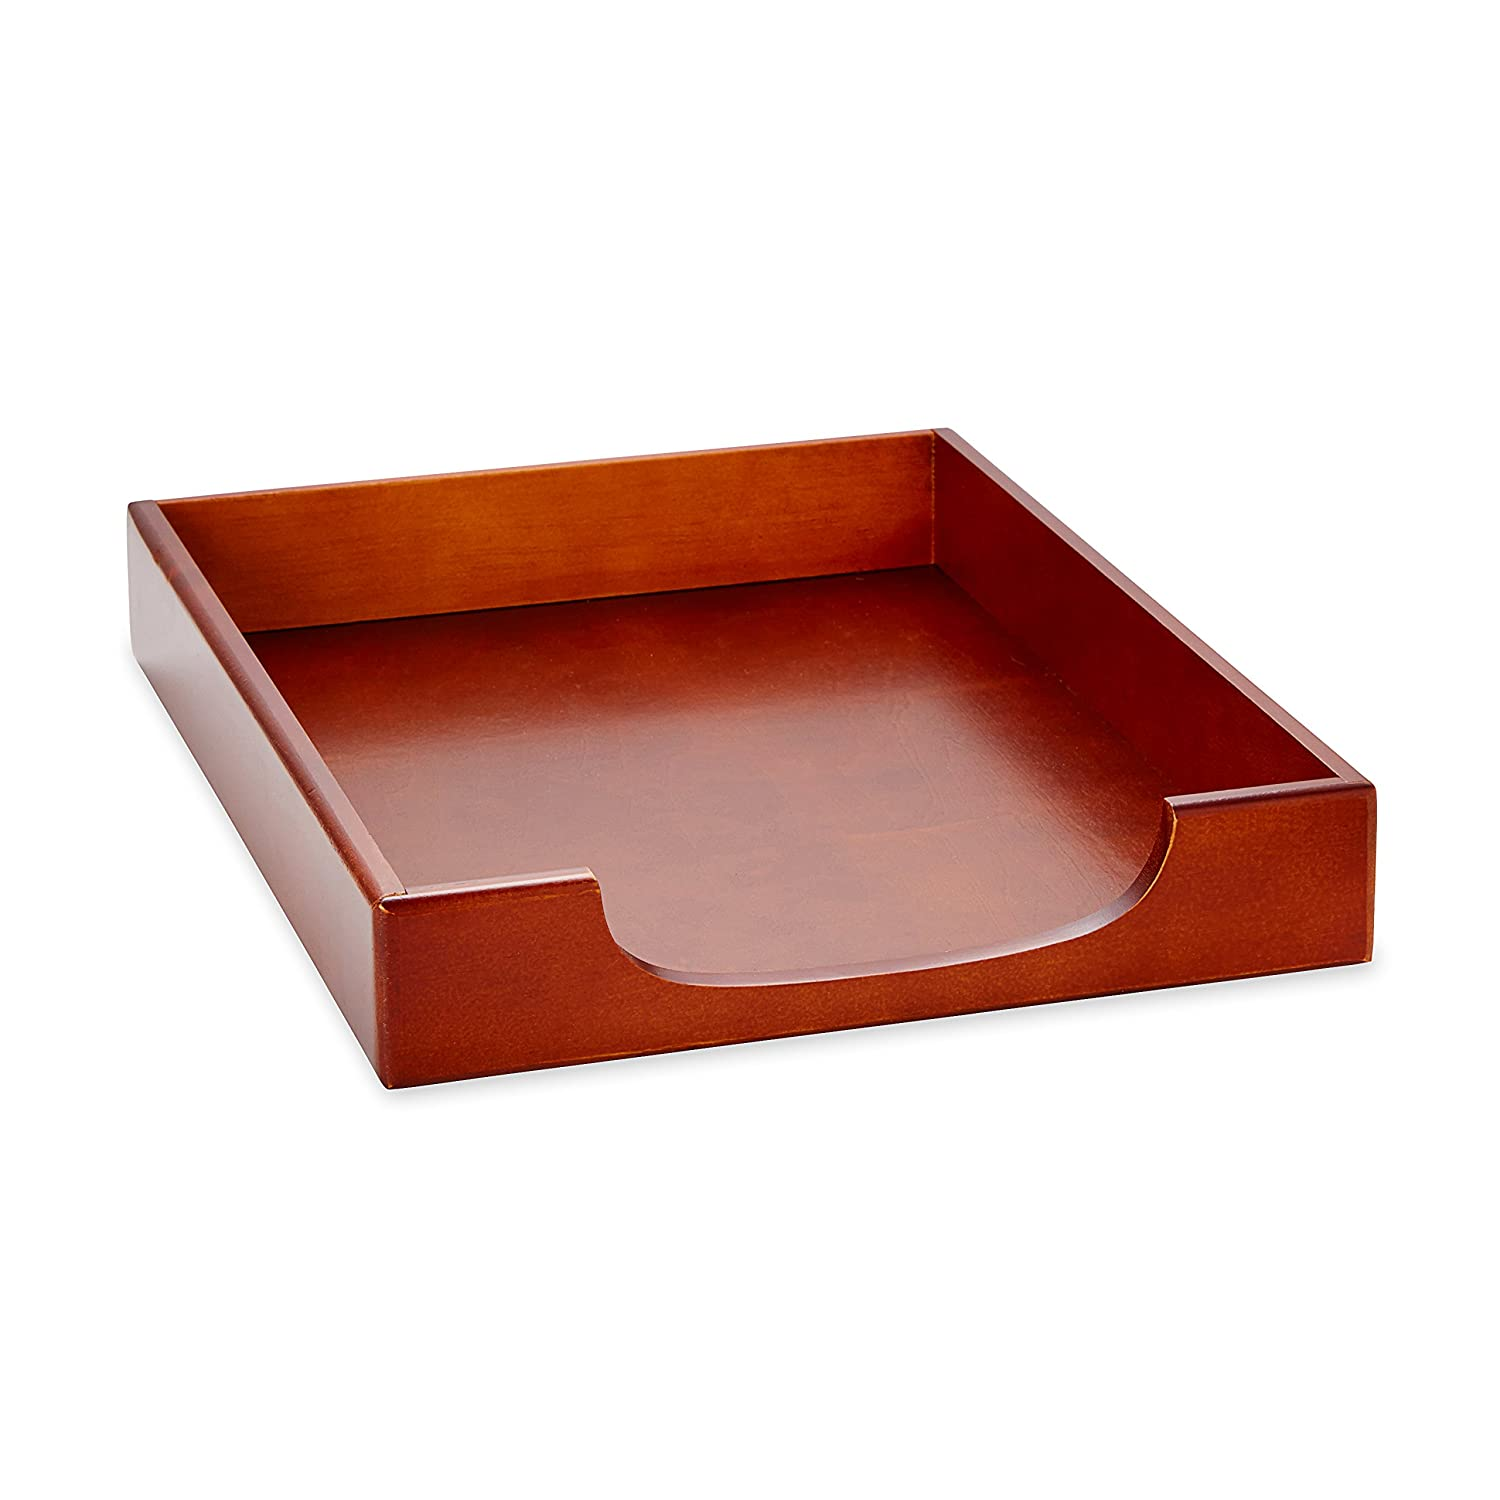 Rolodex Desk Tray, Wood Tones Front Load Stacking Letter Tray, 1 Unit, Mahogany (23350) Newell Rubbermaid Office